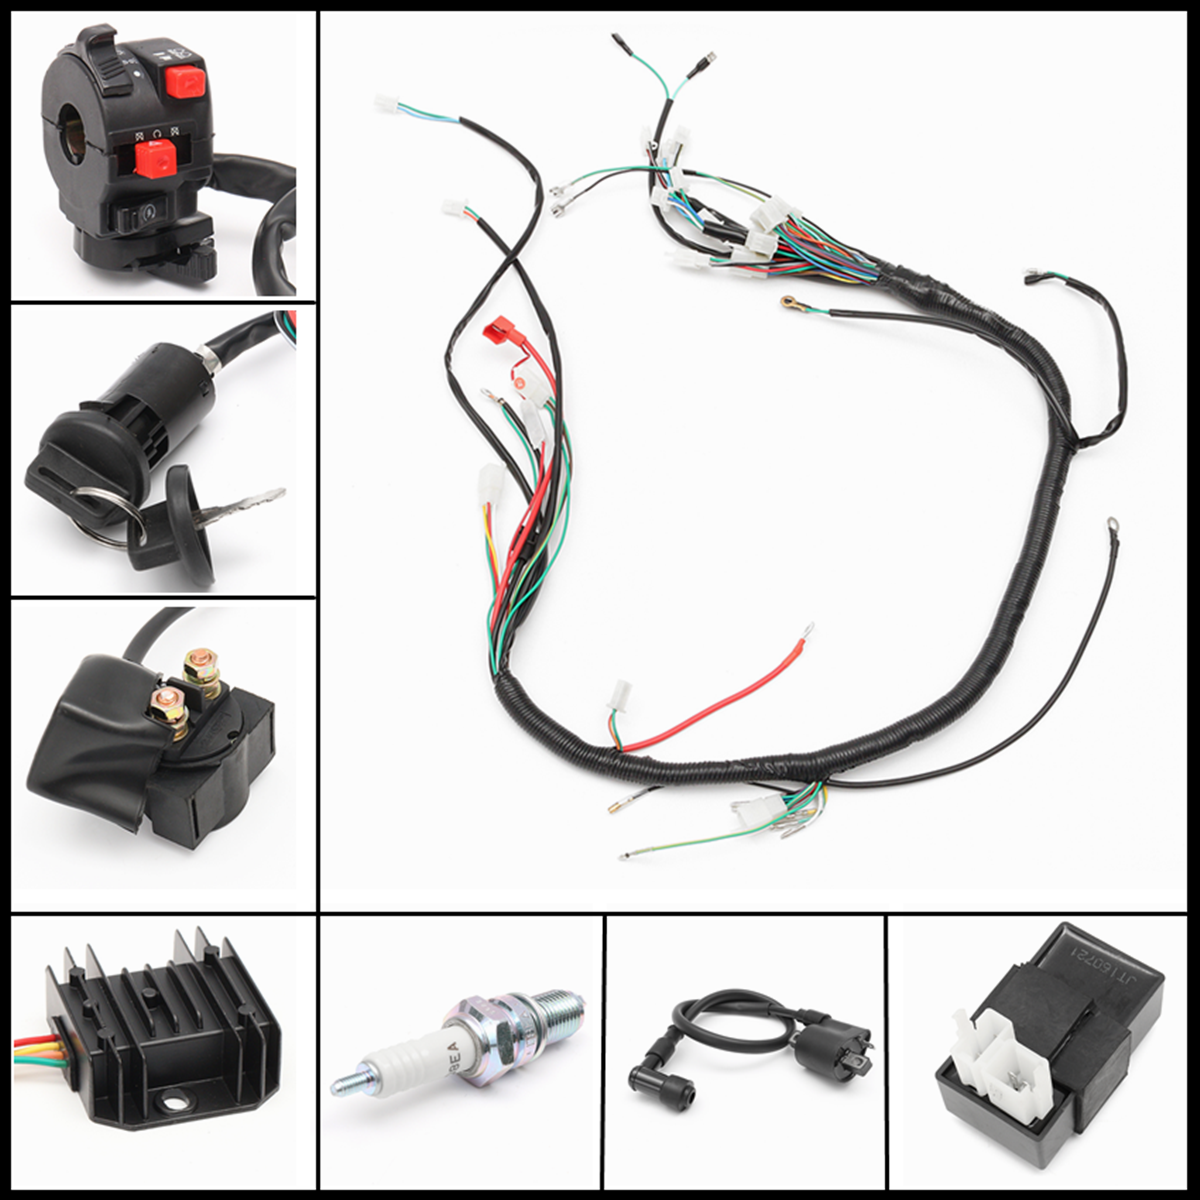 Wiring Harness Kit For Atv Diagrams 1981 Ford F 150 Kits Loom Solenoid Coil Rectifier Cdi Fit 120 A F100 Tpi 305 Chevy